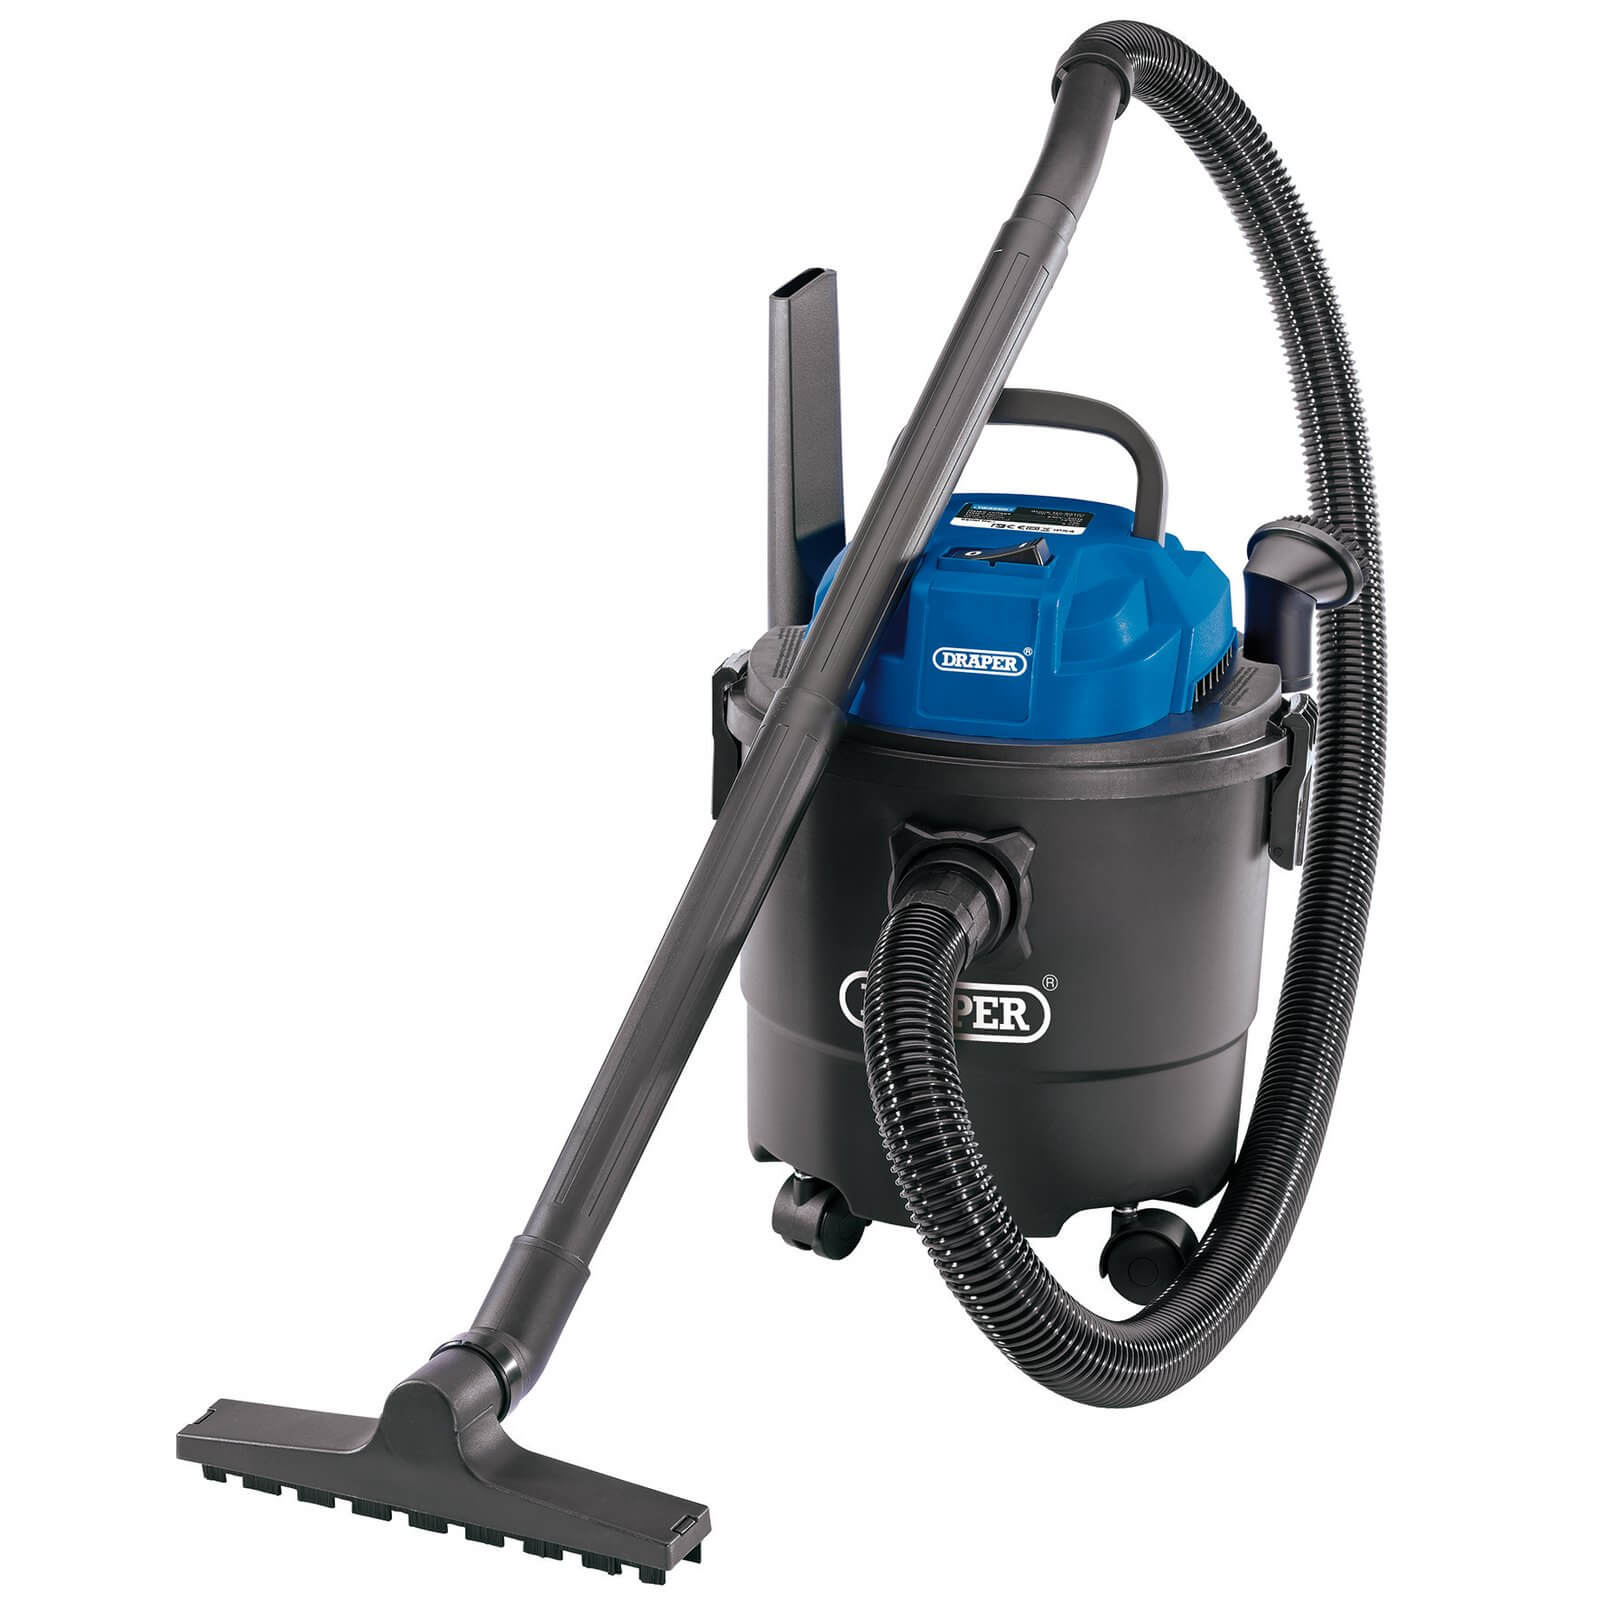 Image of Draper WDV15P Wet and Dry Vacuum Cleaner 240v